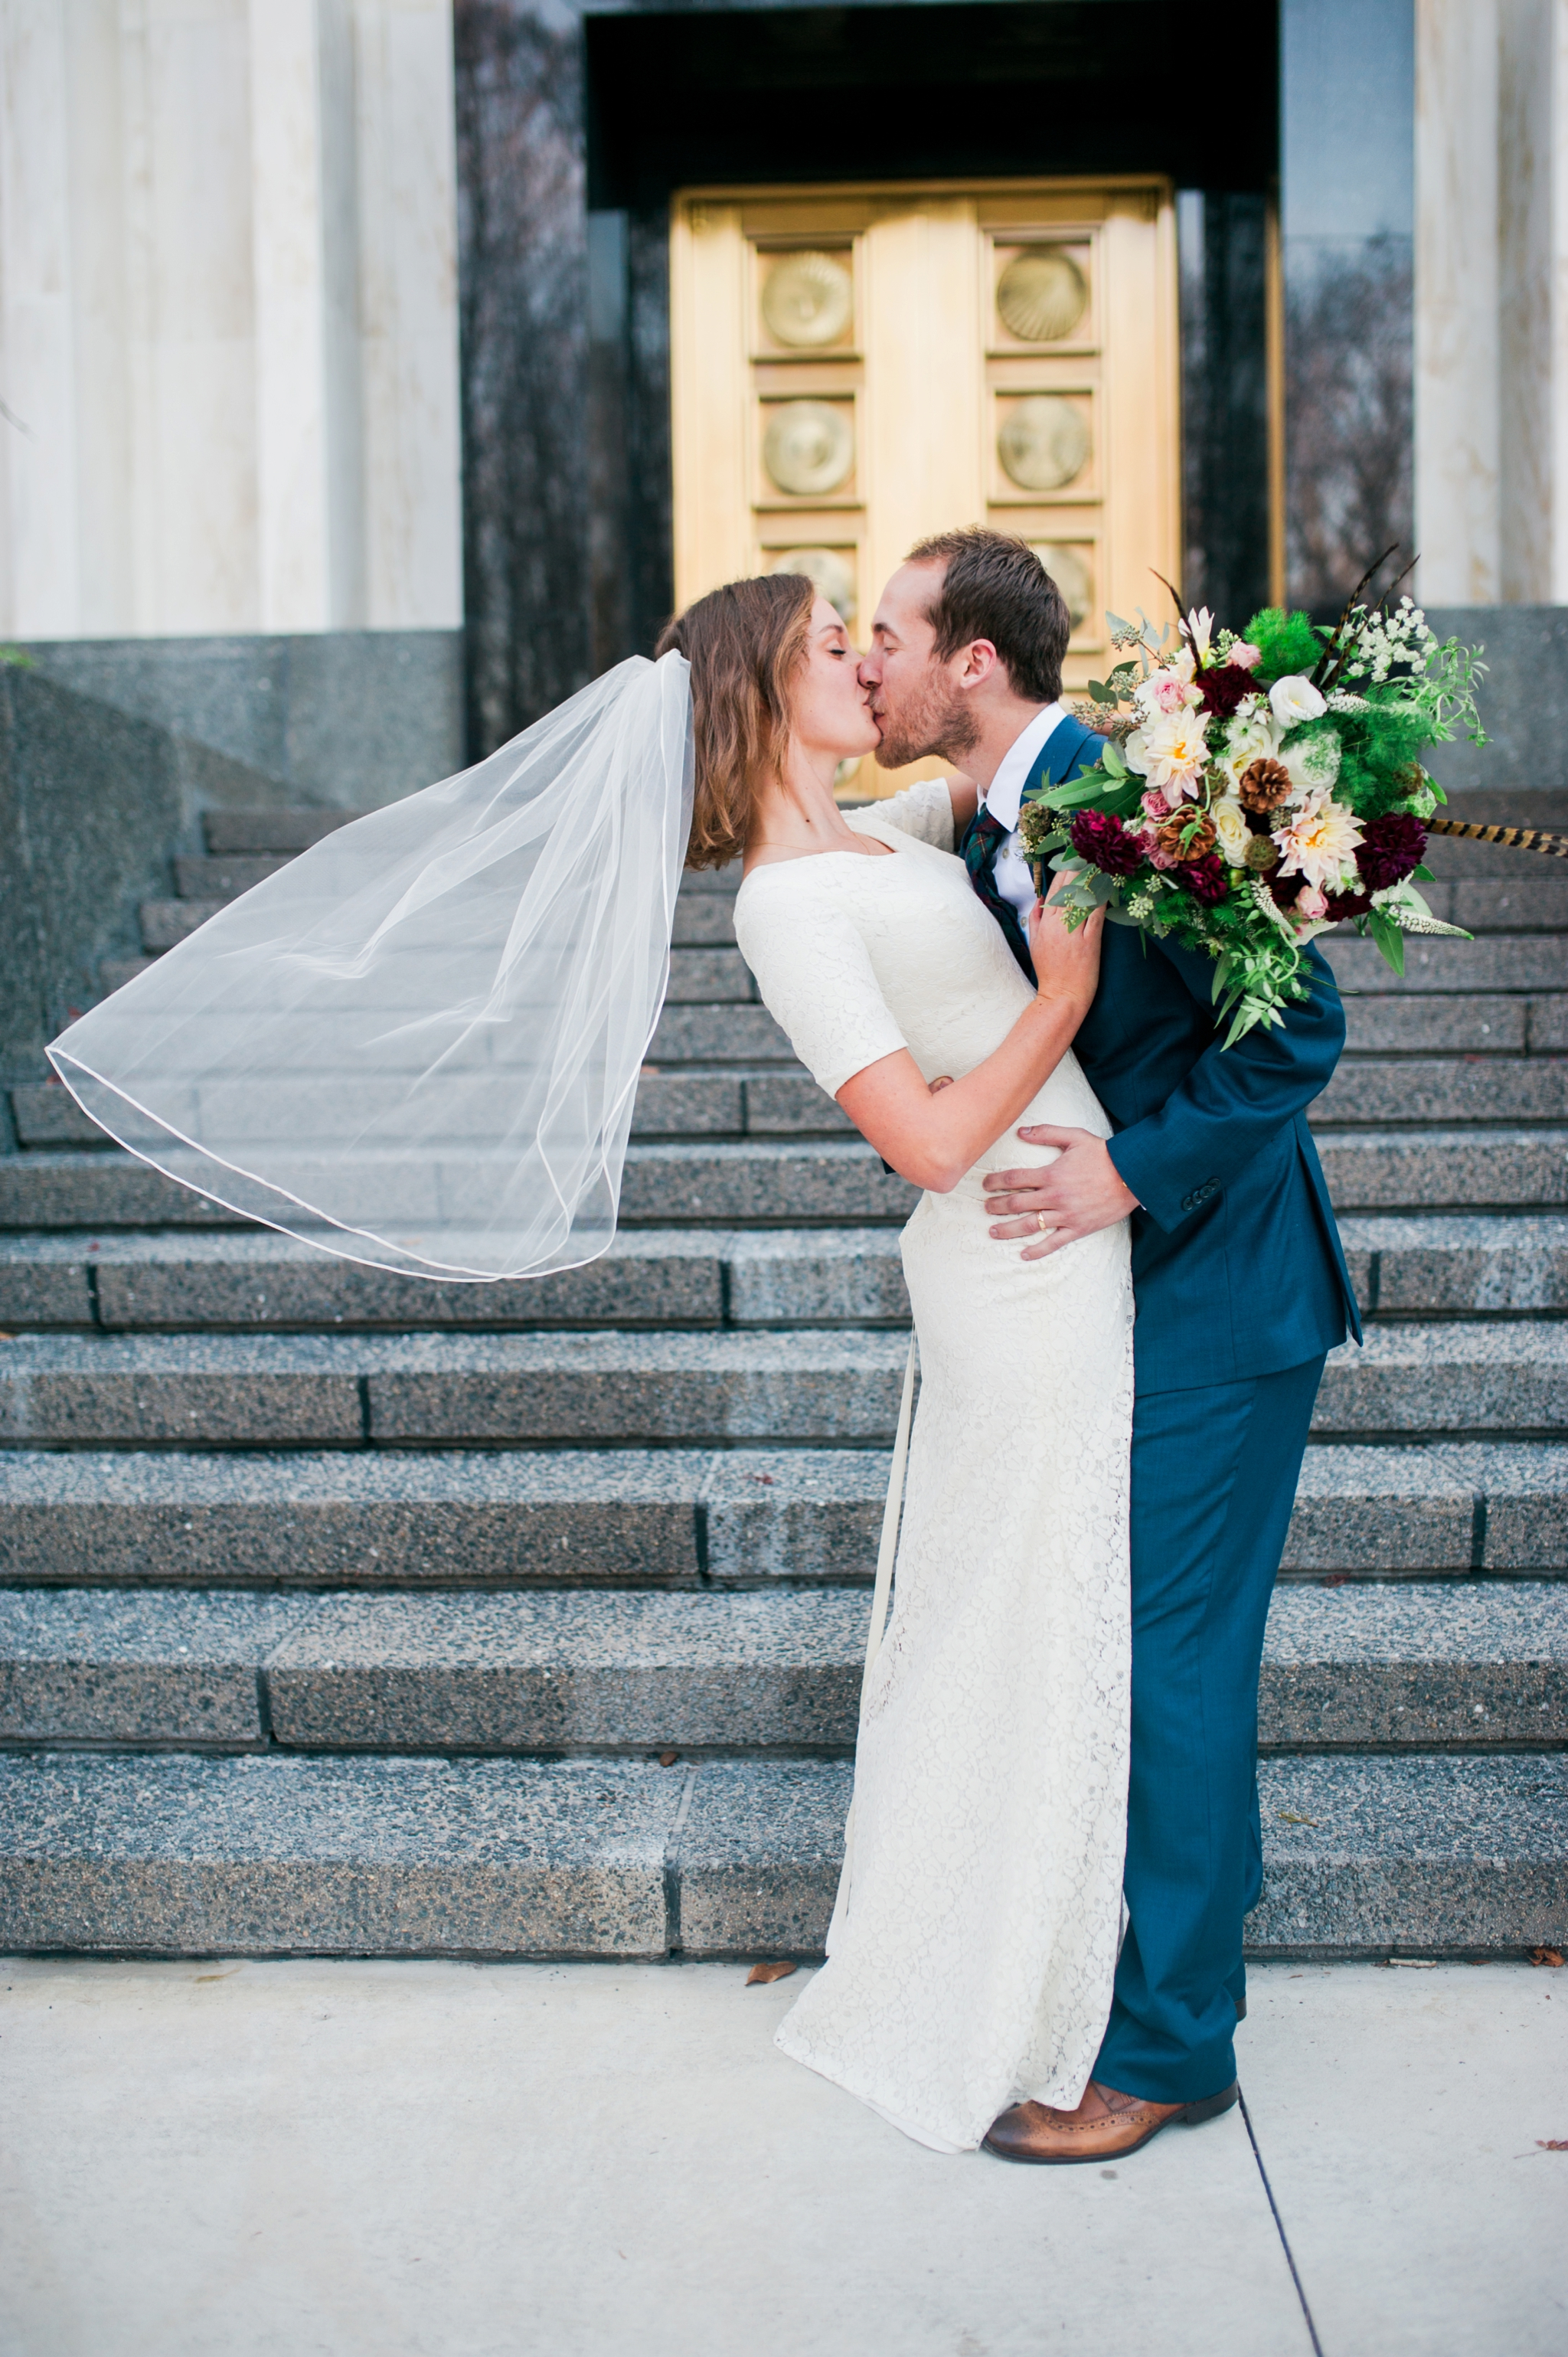 Romantic Washington DC Wedding at LDS Mormon Temple by Katie Vee Photography